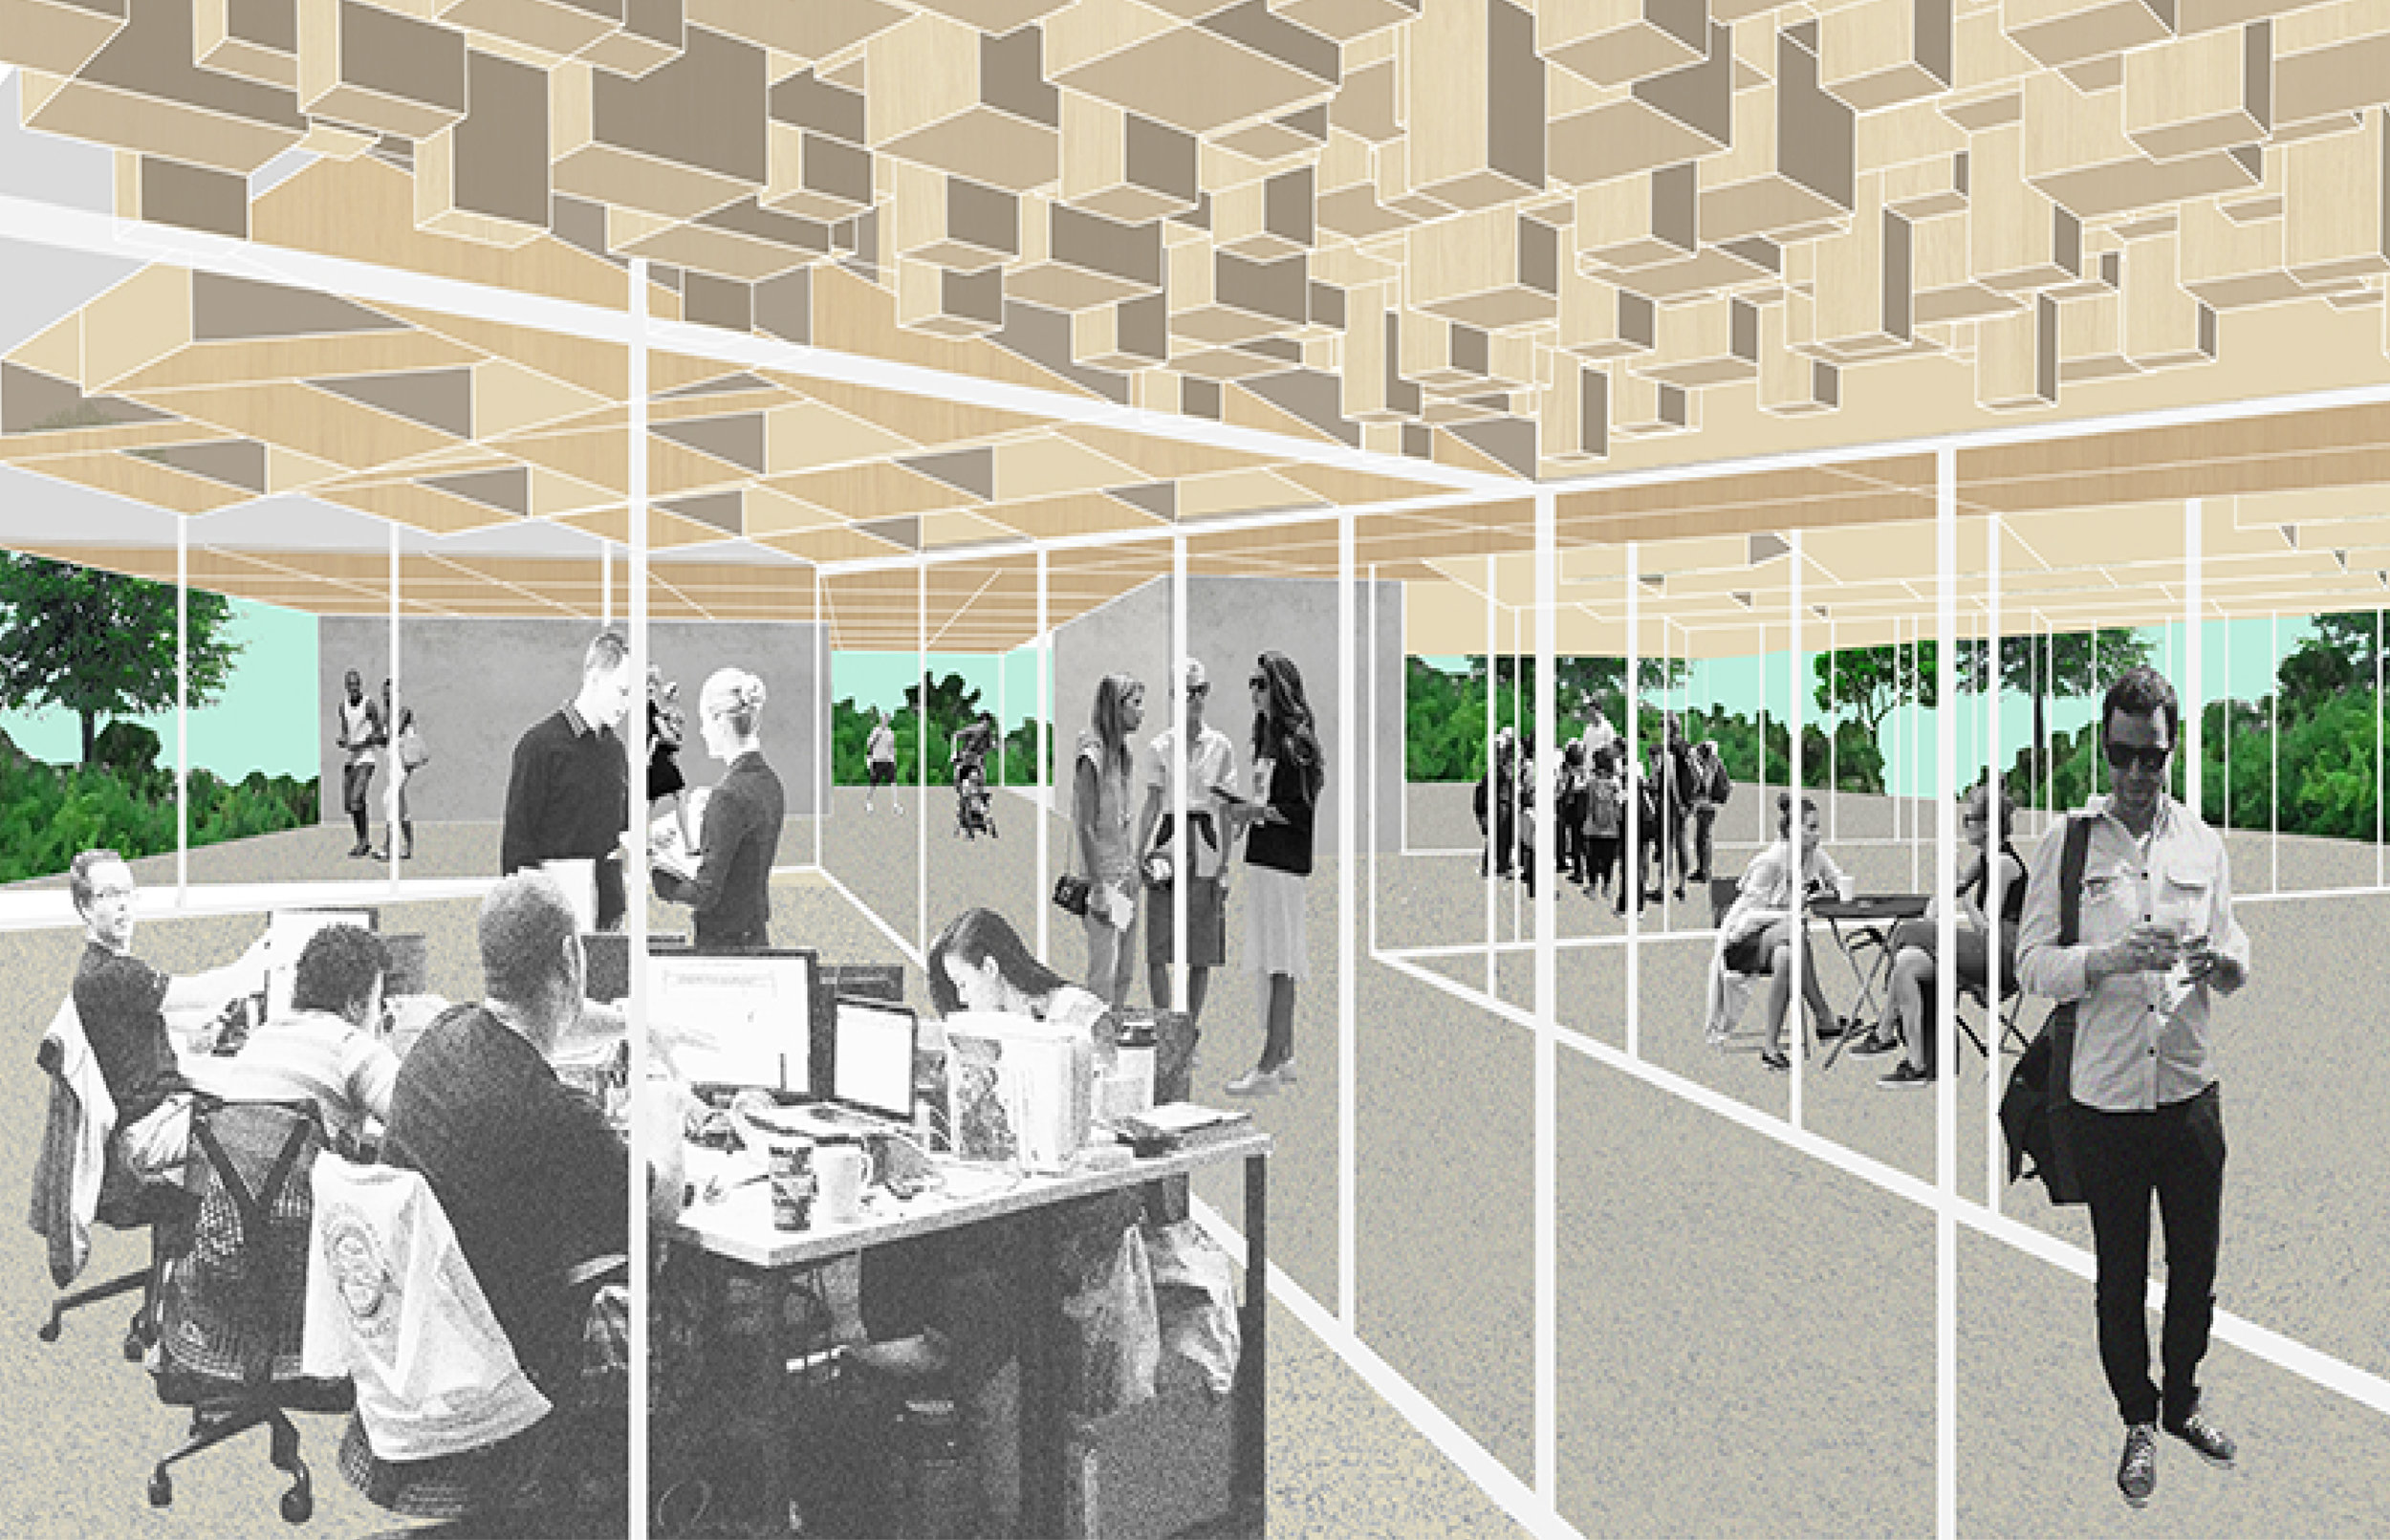 Collective Area with the Absorption Acoustic Ceiling for Learning how to listen